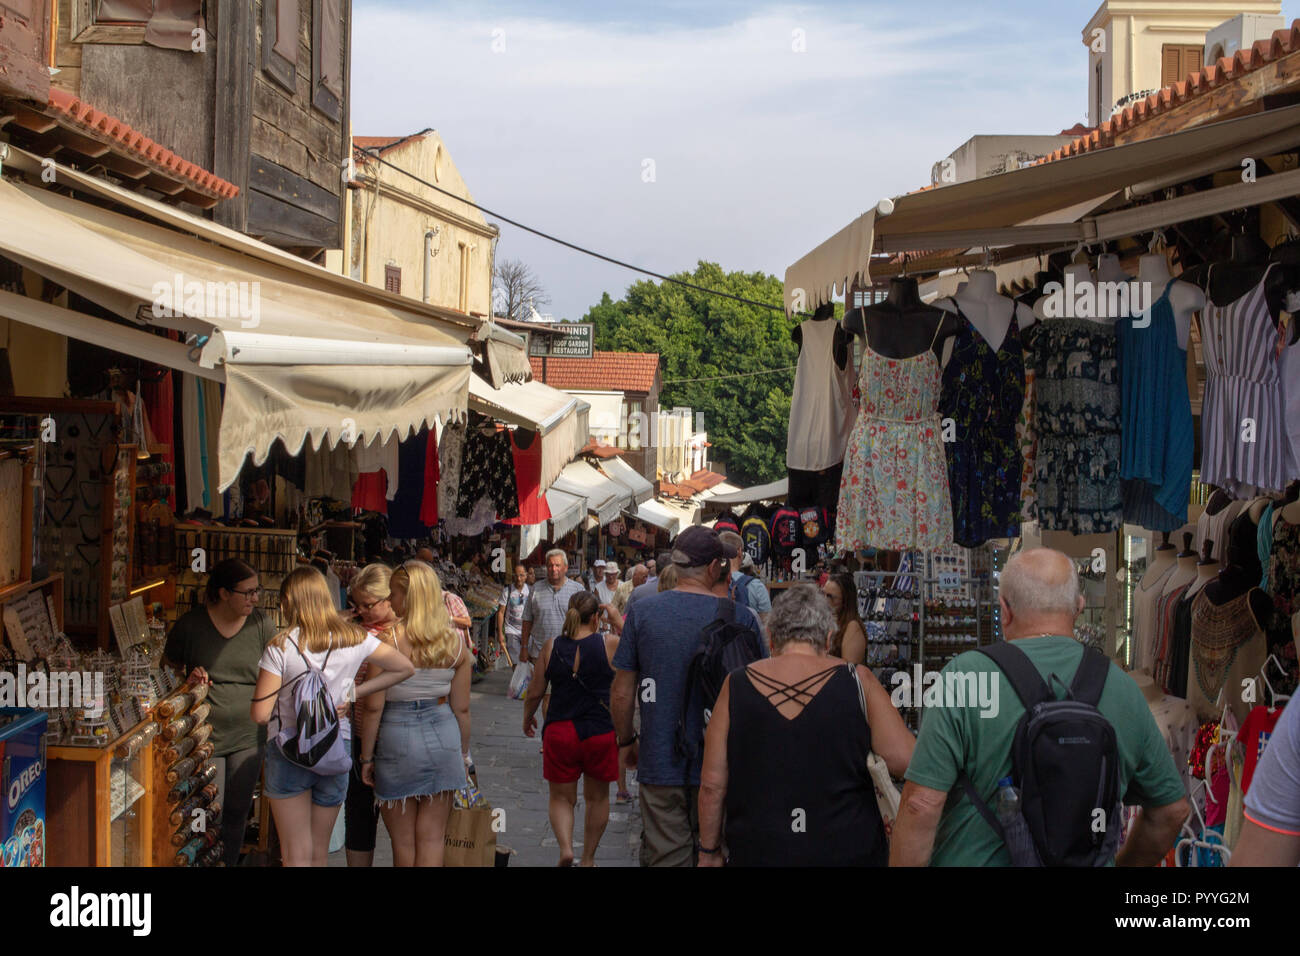 A shopping street in the Old Town of Rhodes. though it is an UNESCO Heritage Site much of the town resembles a thriving bazaar. - Stock Image